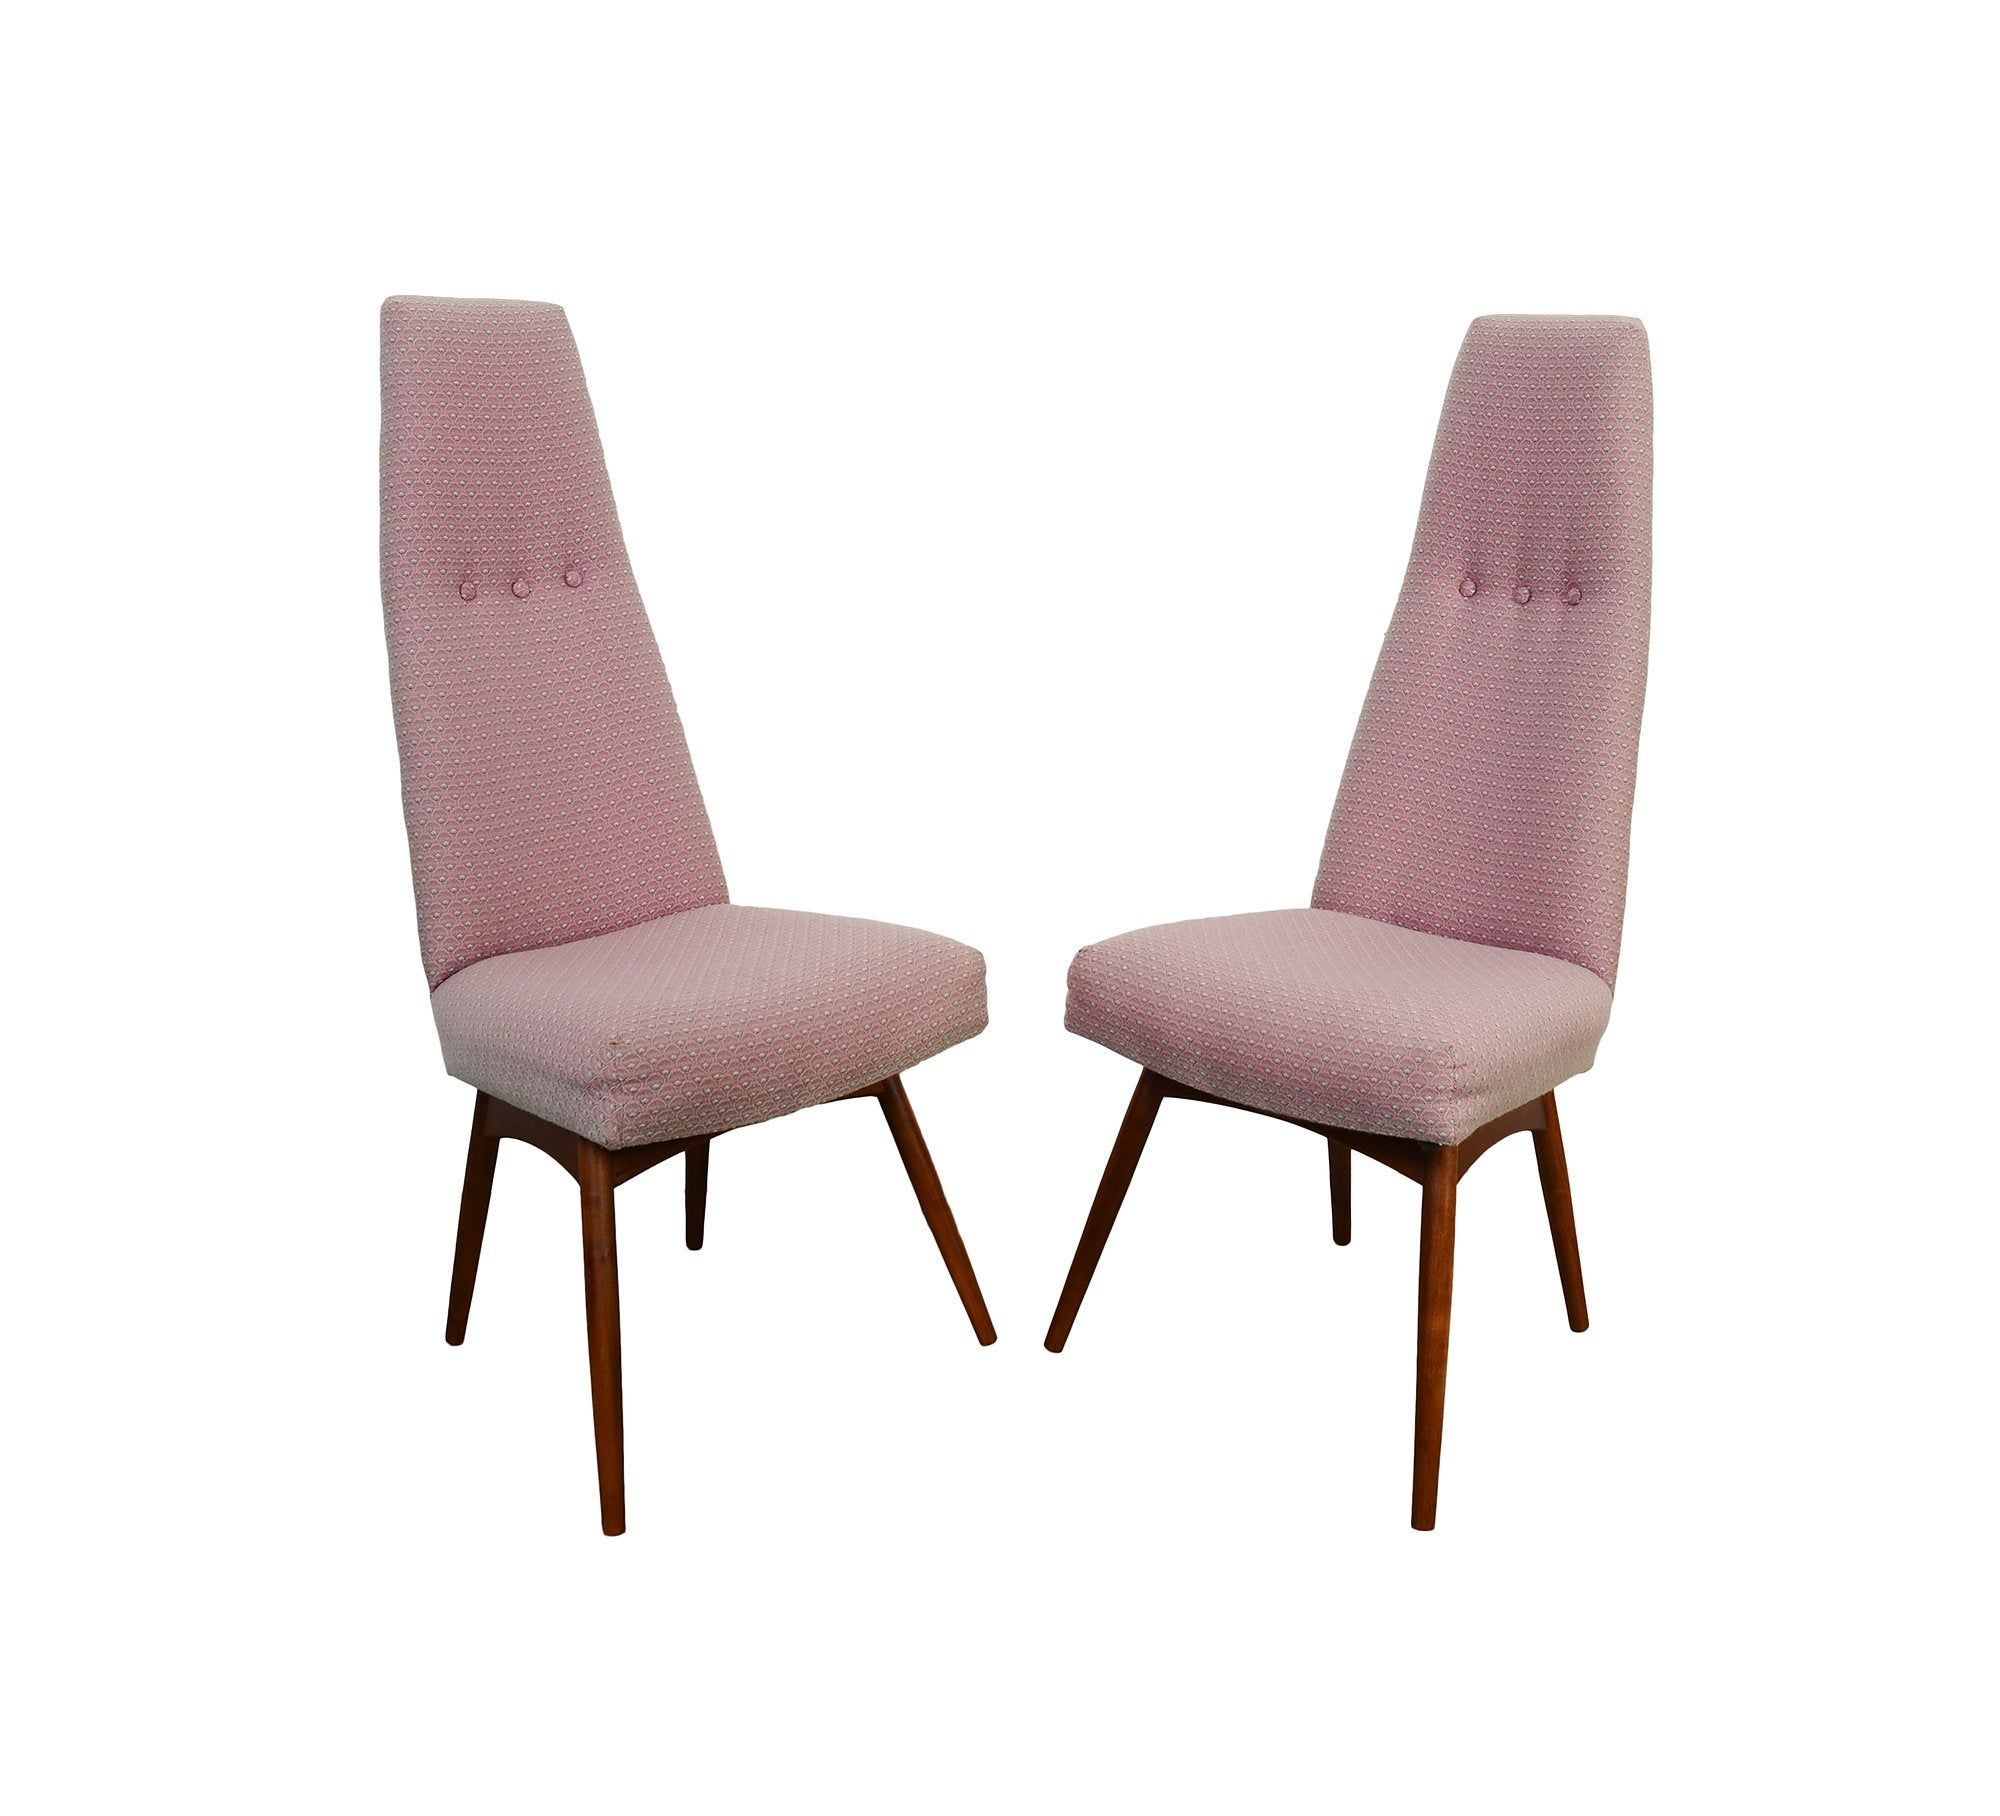 Adrian Pearsall High Back Dining Chairs Craft Associates ...